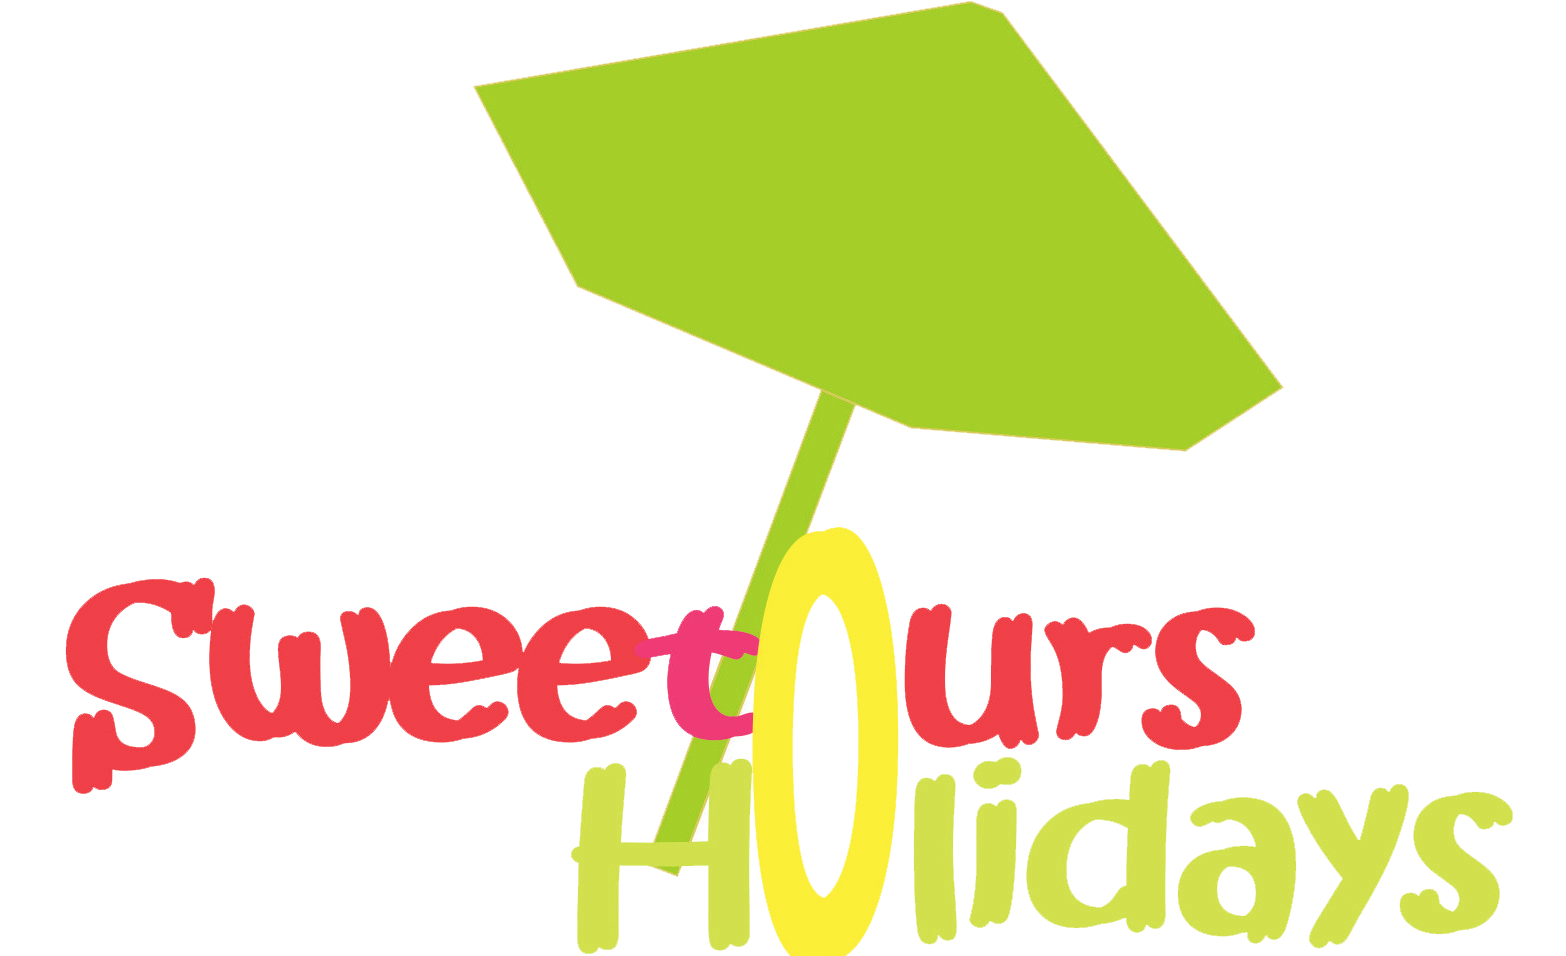 Sweetours Holiday